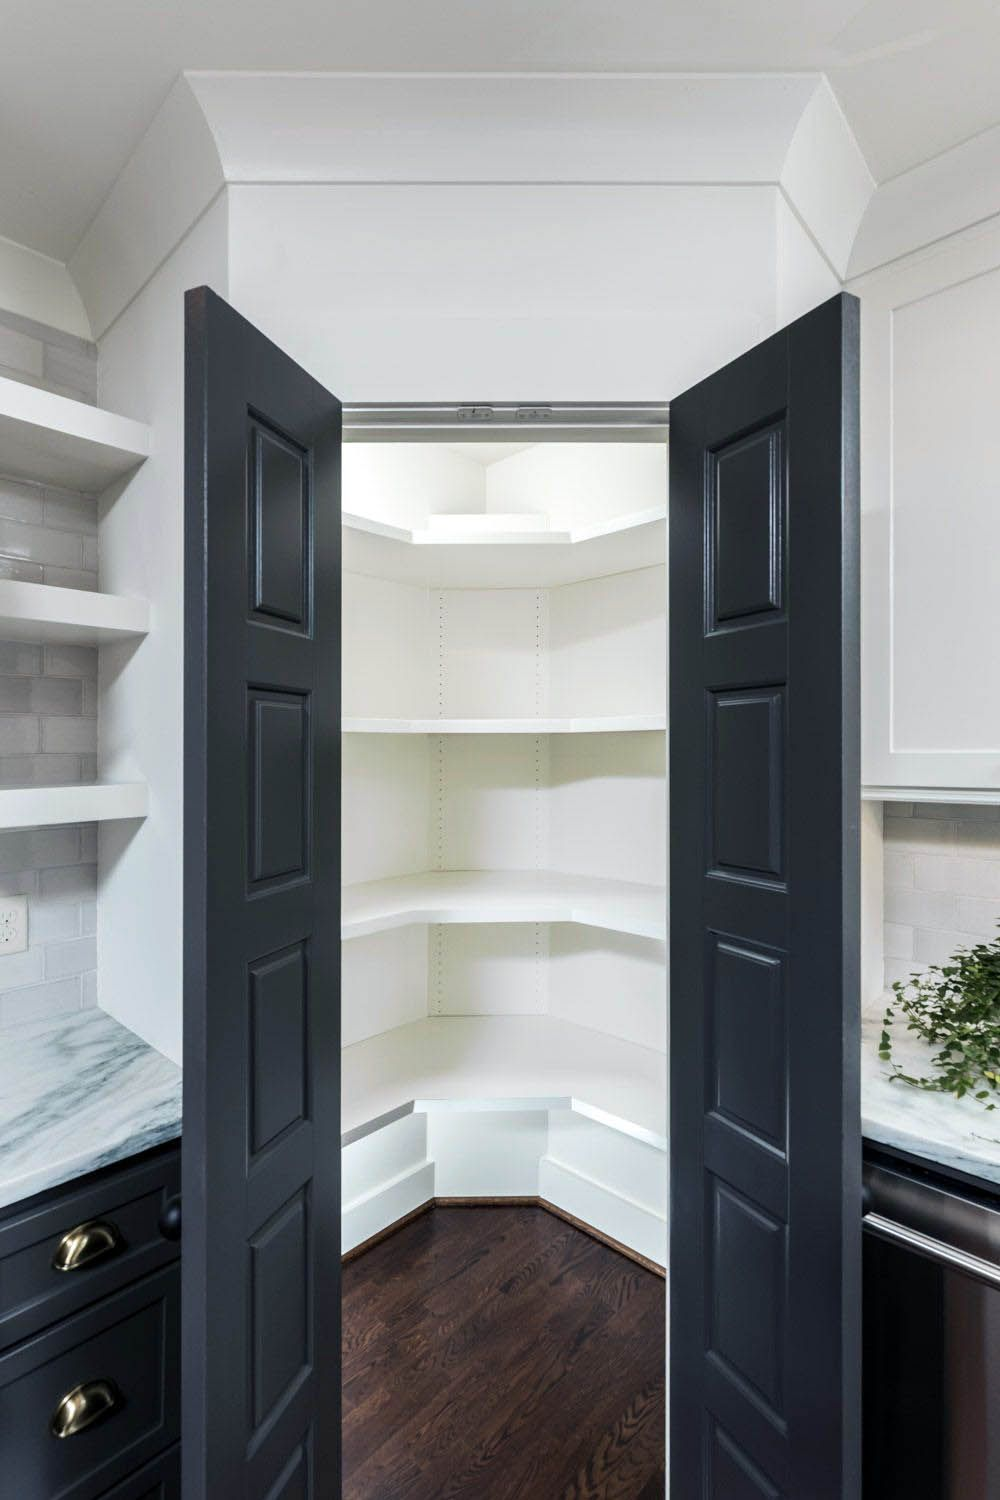 Superior 12 Inch Wide Kitchen Pantry Cabinet Only On Homesable Com In 2020 Kitchen Pantry Cabinets Corner Kitchen Pantry Pantry Cabinet